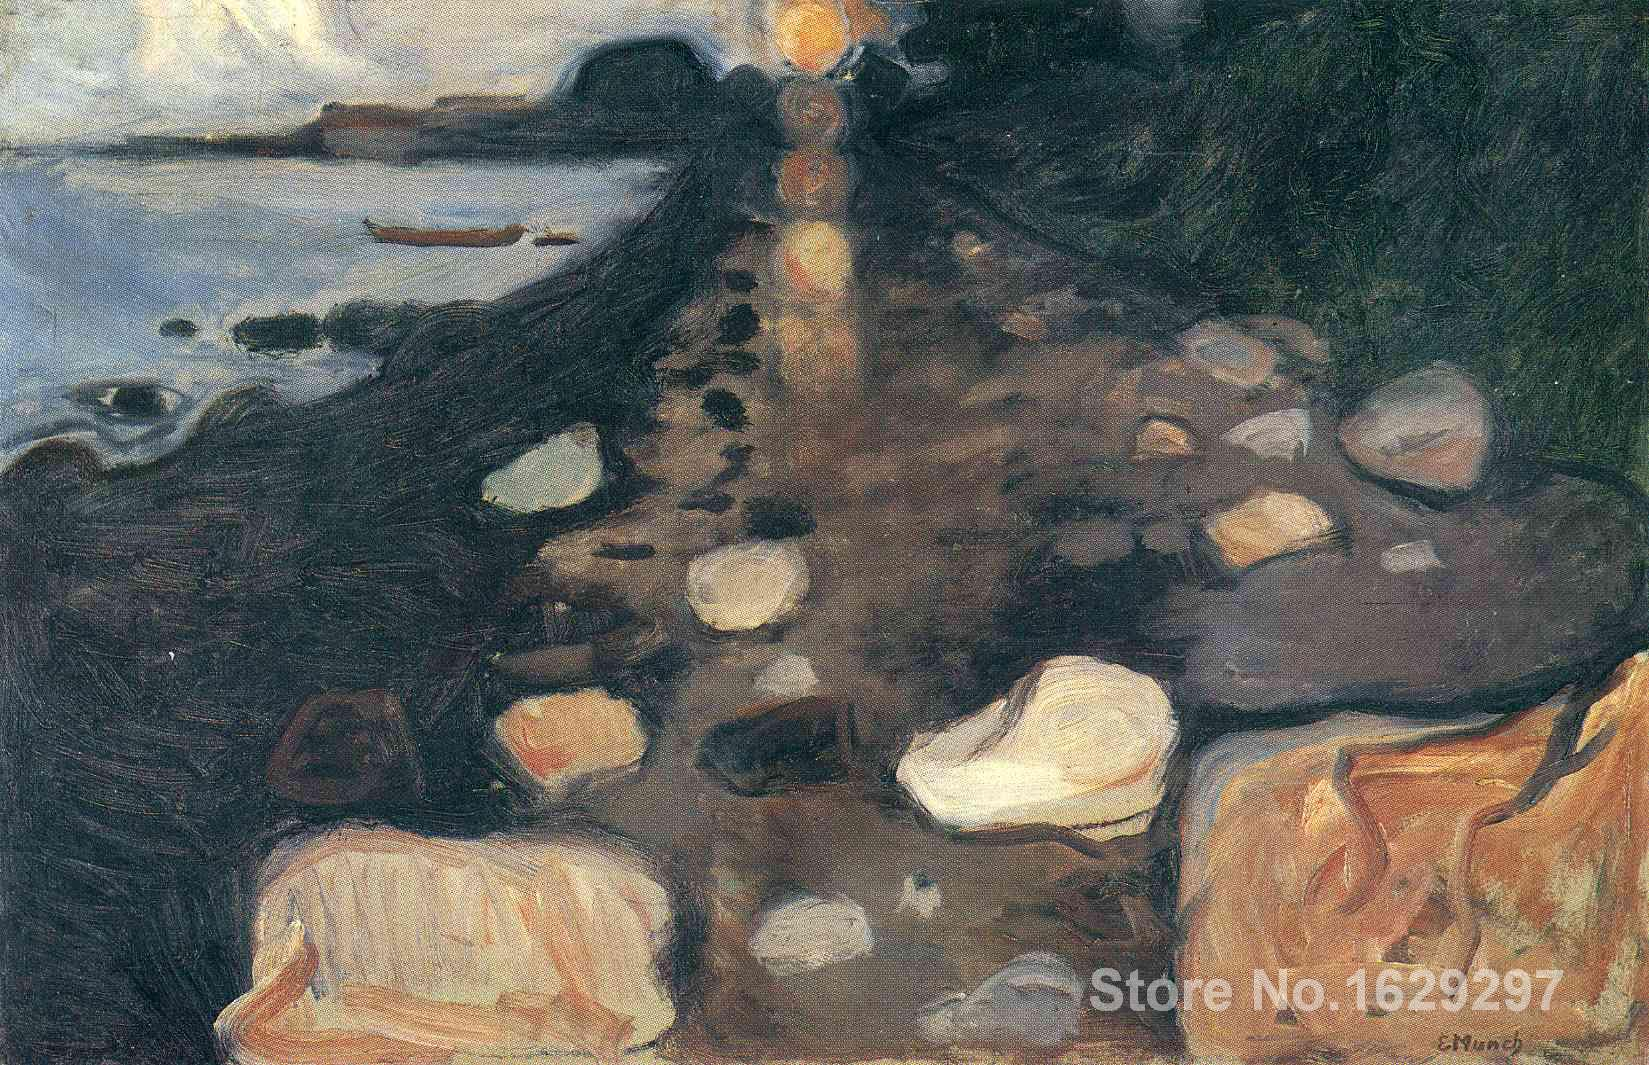 Painting by Edvard Munch art Moonlight on the Shore High Quality Hand paintedPainting by Edvard Munch art Moonlight on the Shore High Quality Hand painted